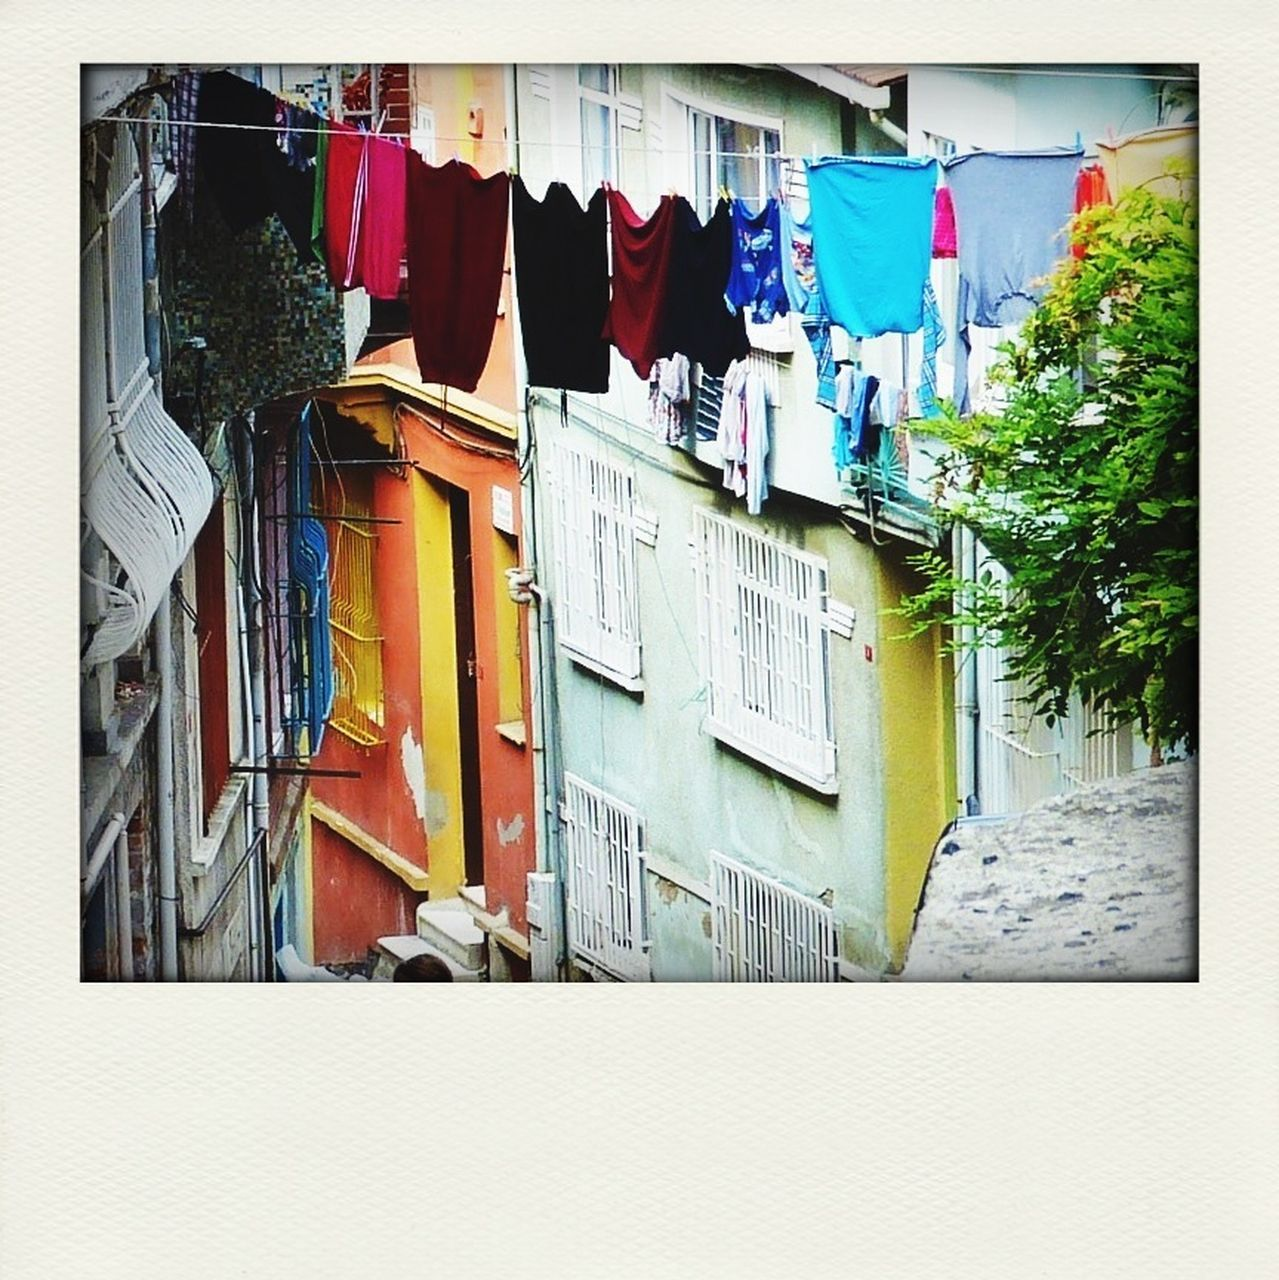 hanging, architecture, clothing, drying, clothesline, built structure, building exterior, no people, day, outdoors, multi colored